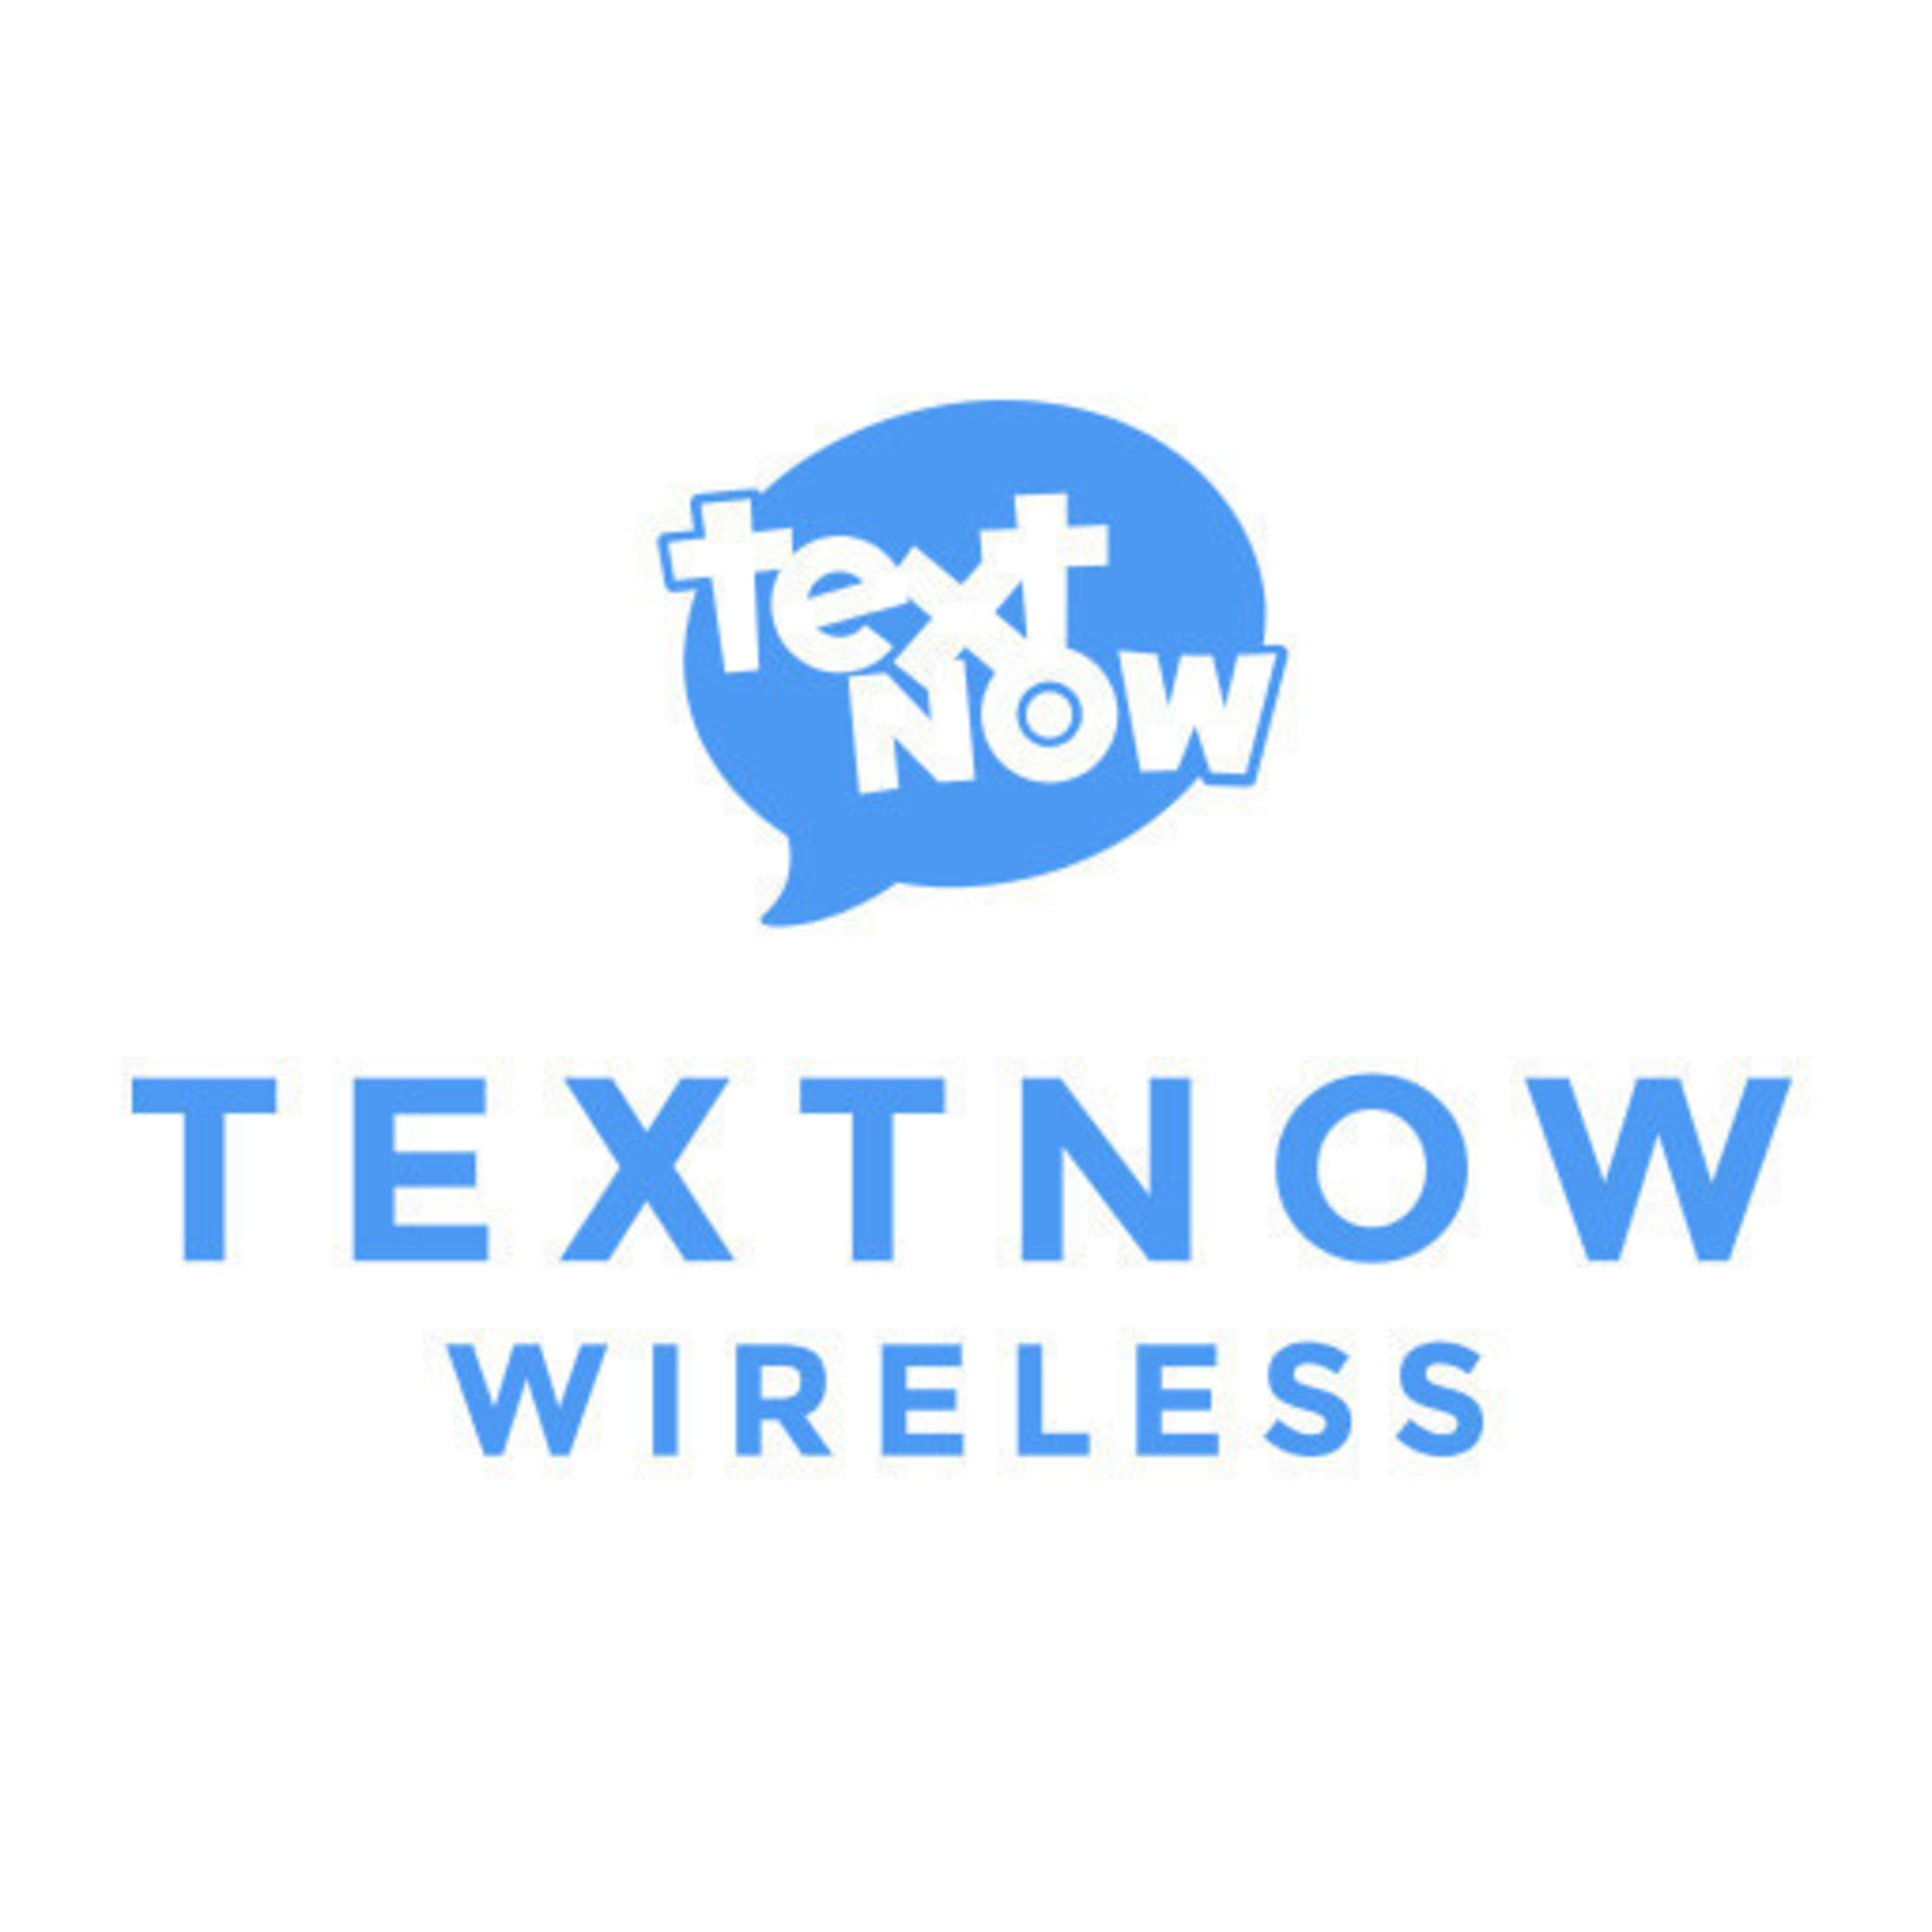 TextNow Wireless Welcomes America's #1 Smartphone, Samsung Galaxy S5, to its Device Roster